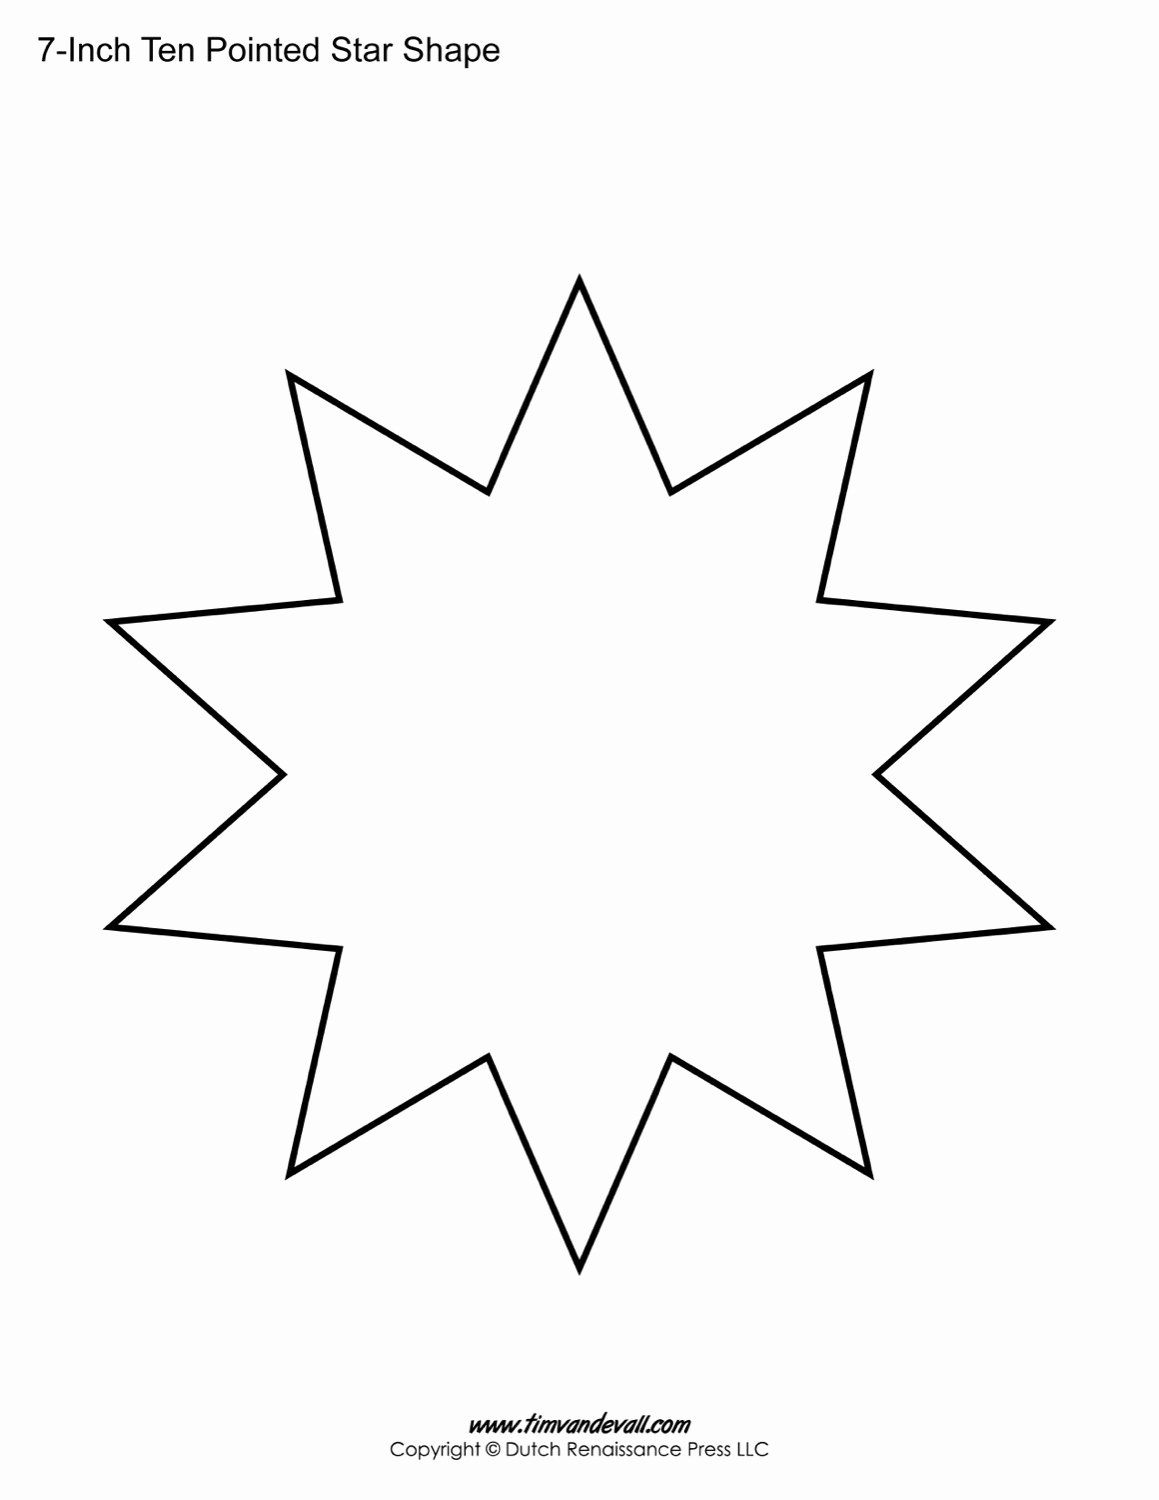 3 Inch Star Template New Blank Ten Pointed Star Shapes